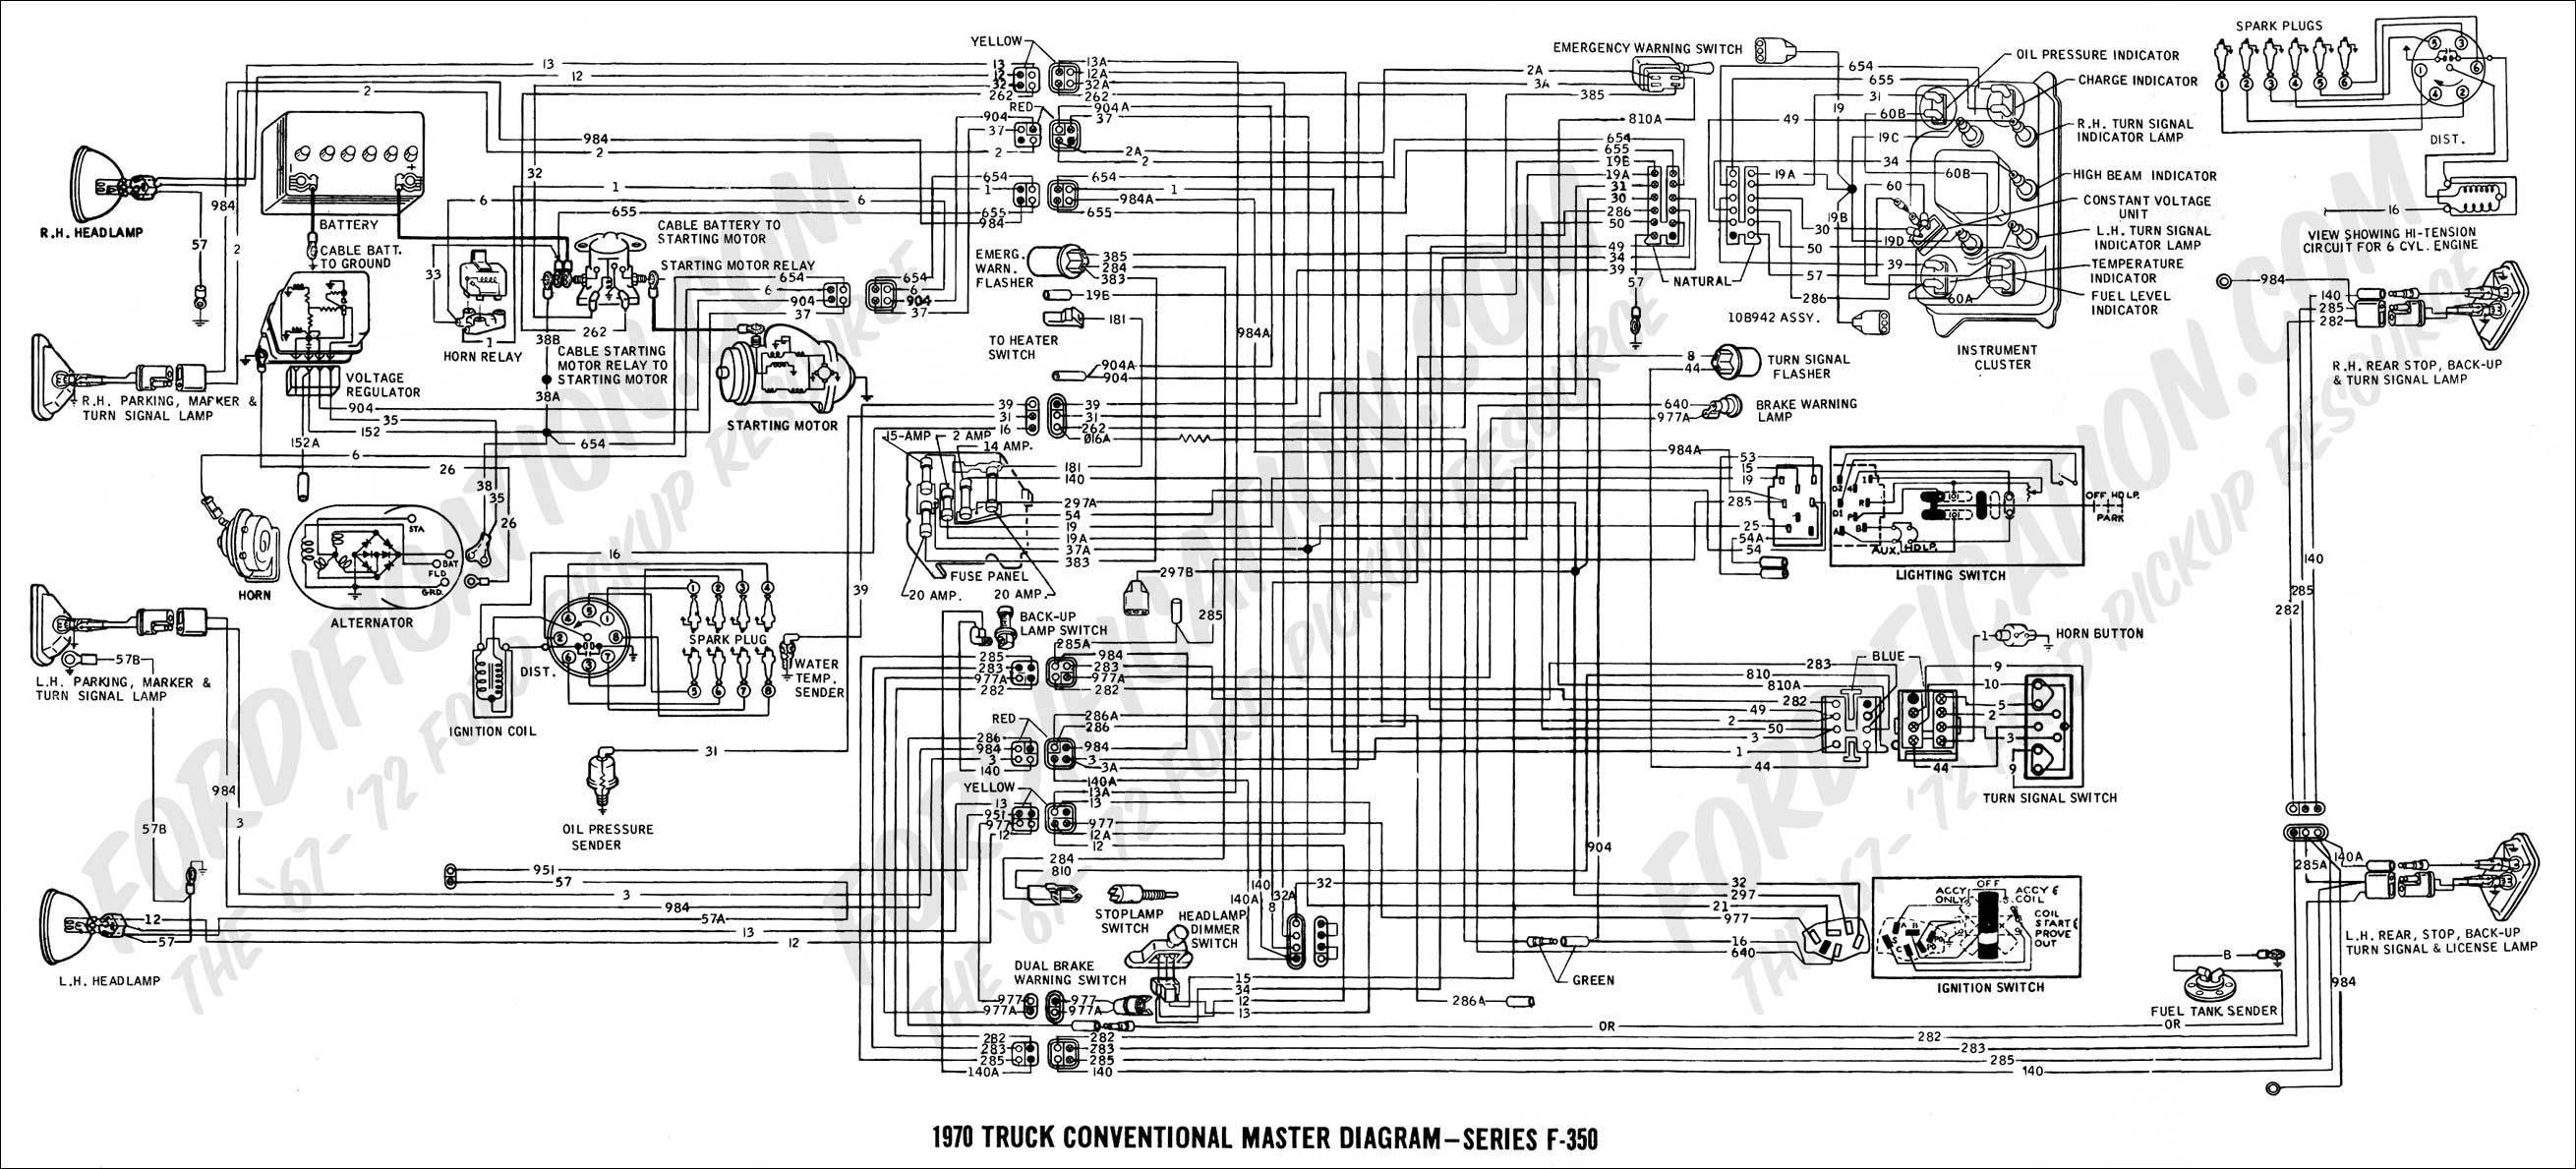 94 ford Ranger Engine Diagram 94 ford F350 Wiring Diagram Wiring Diagram Pass Of 94 ford Ranger Engine Diagram